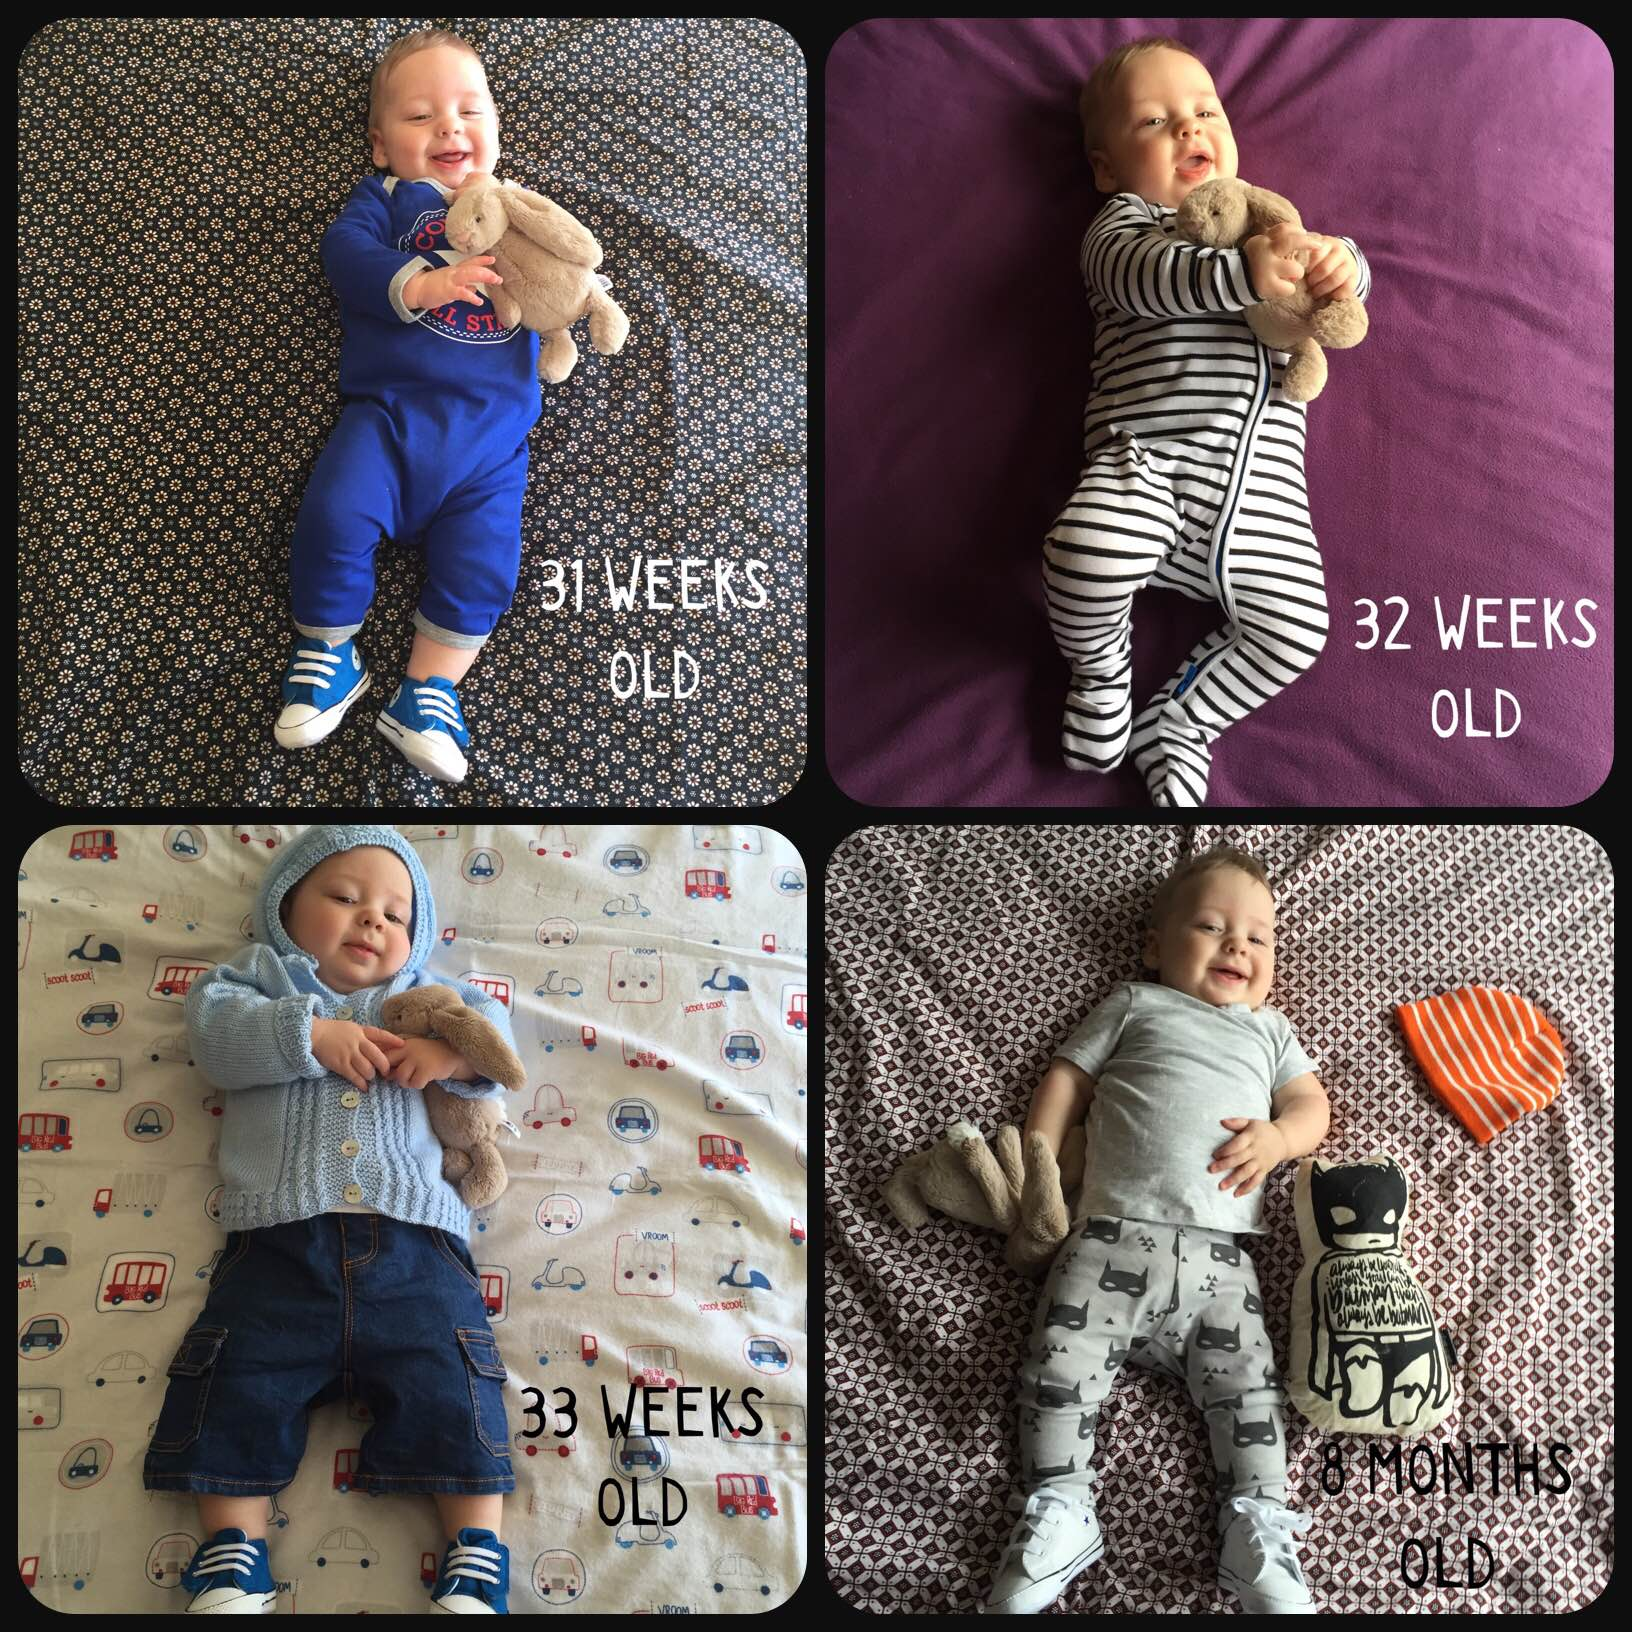 Updated 31 weeks to 8 months old collage